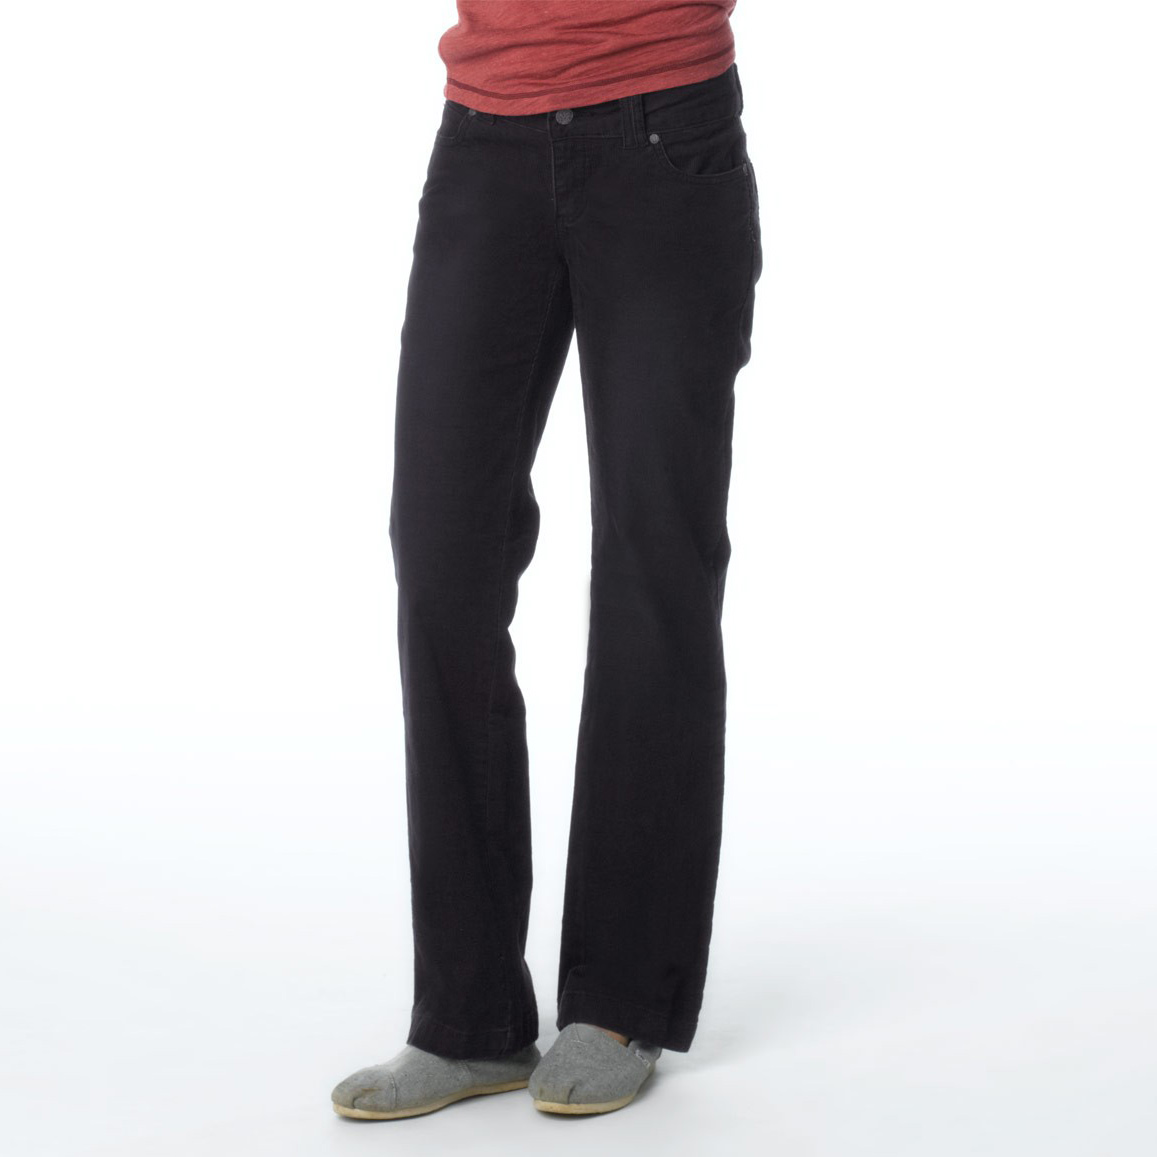 Prana Canyon Cord Pant Womens Apparel at Vickerey